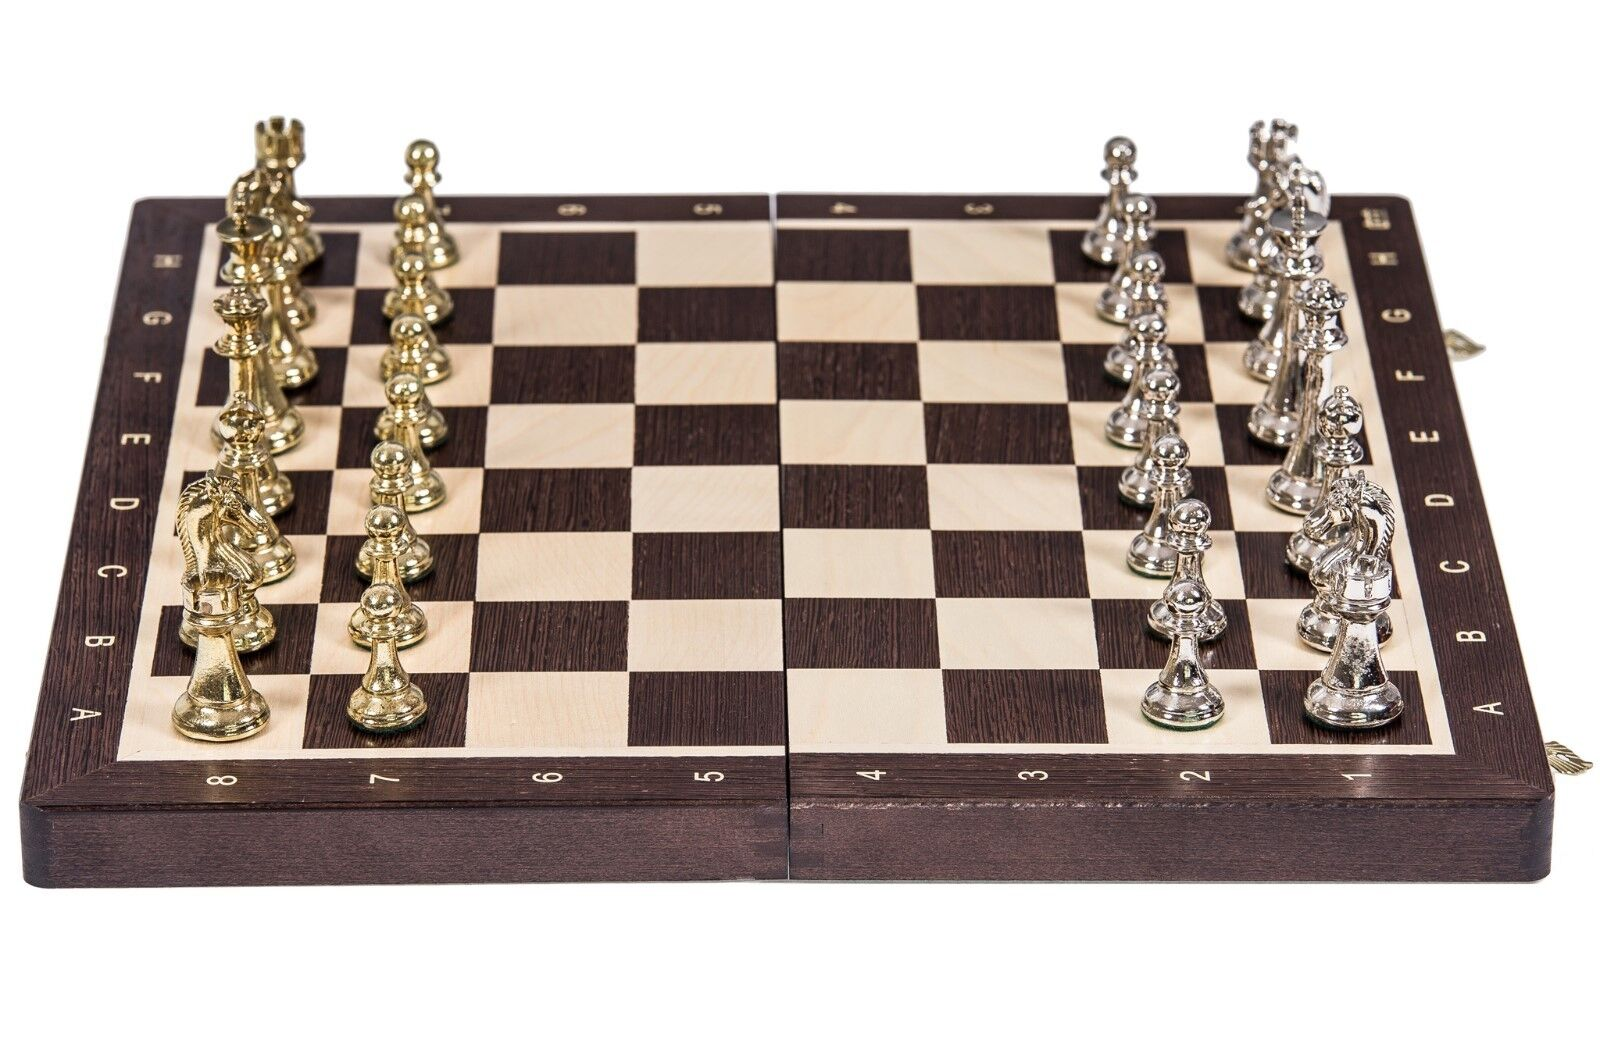 SQUARE - Chess Tournament No. 4  - Wenge   Metal - Chessboard & Chess Pieces